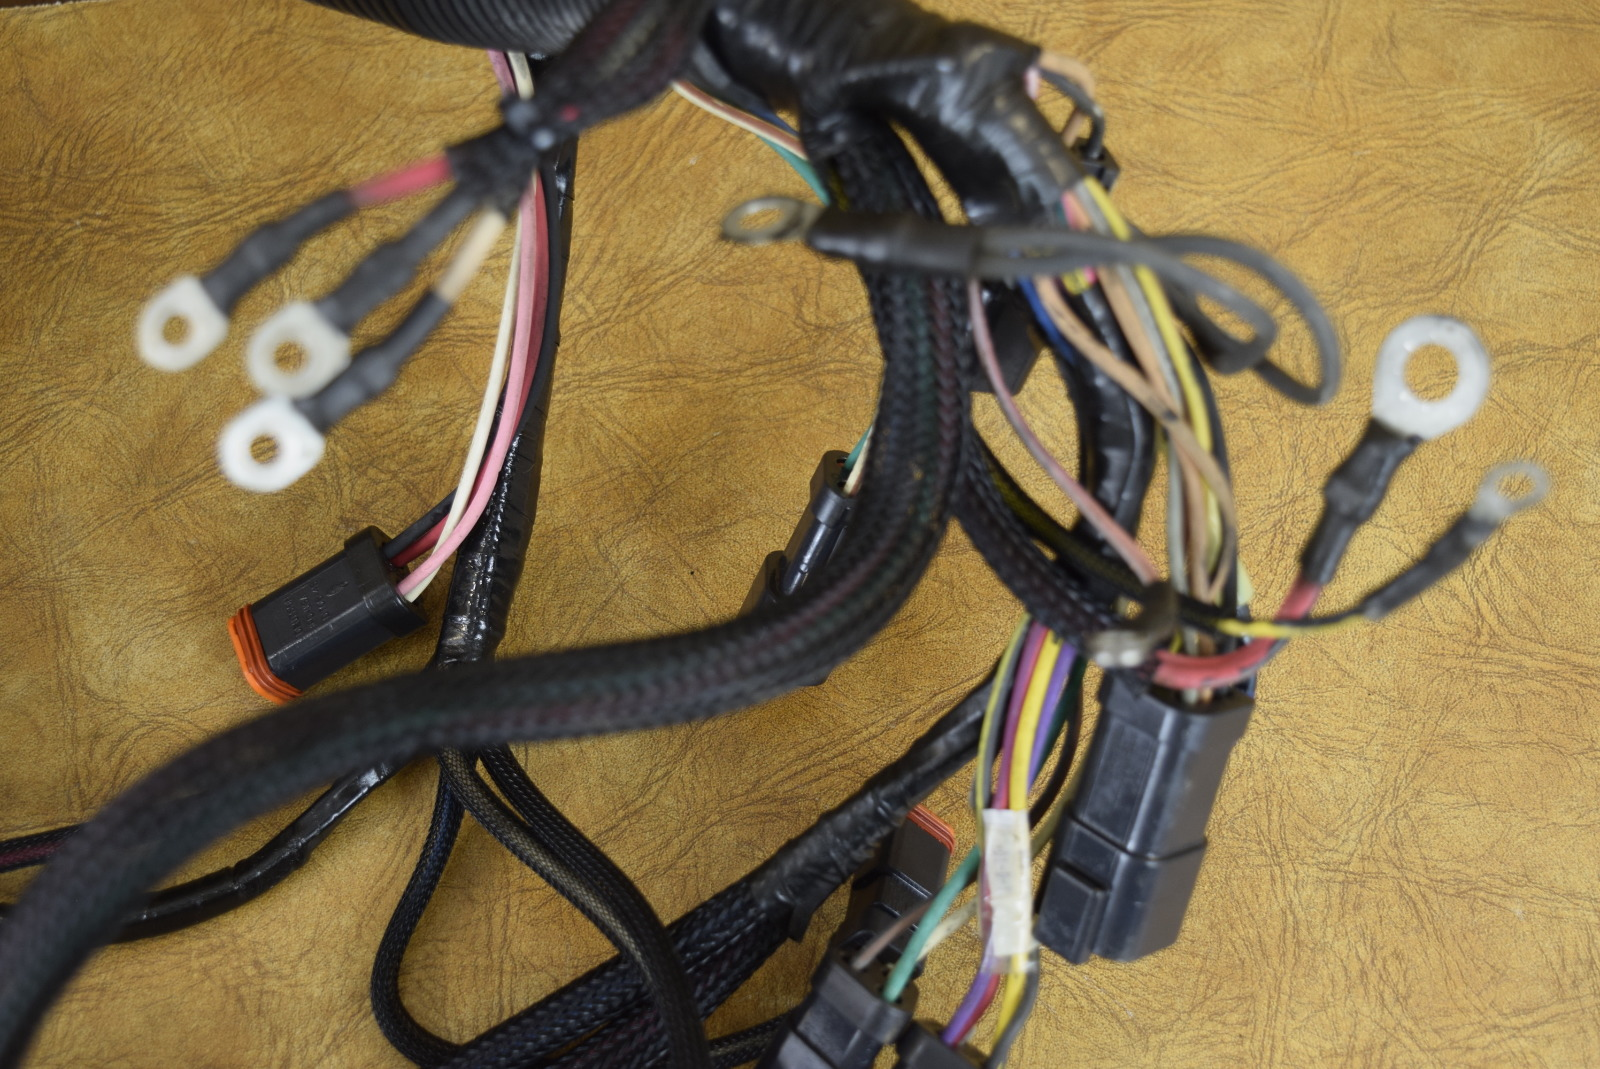 1972 mustang wiring harness omc 1972 225 wiring harness oem! 1999 evinrude motor cable wiring harness 586309 ... #14